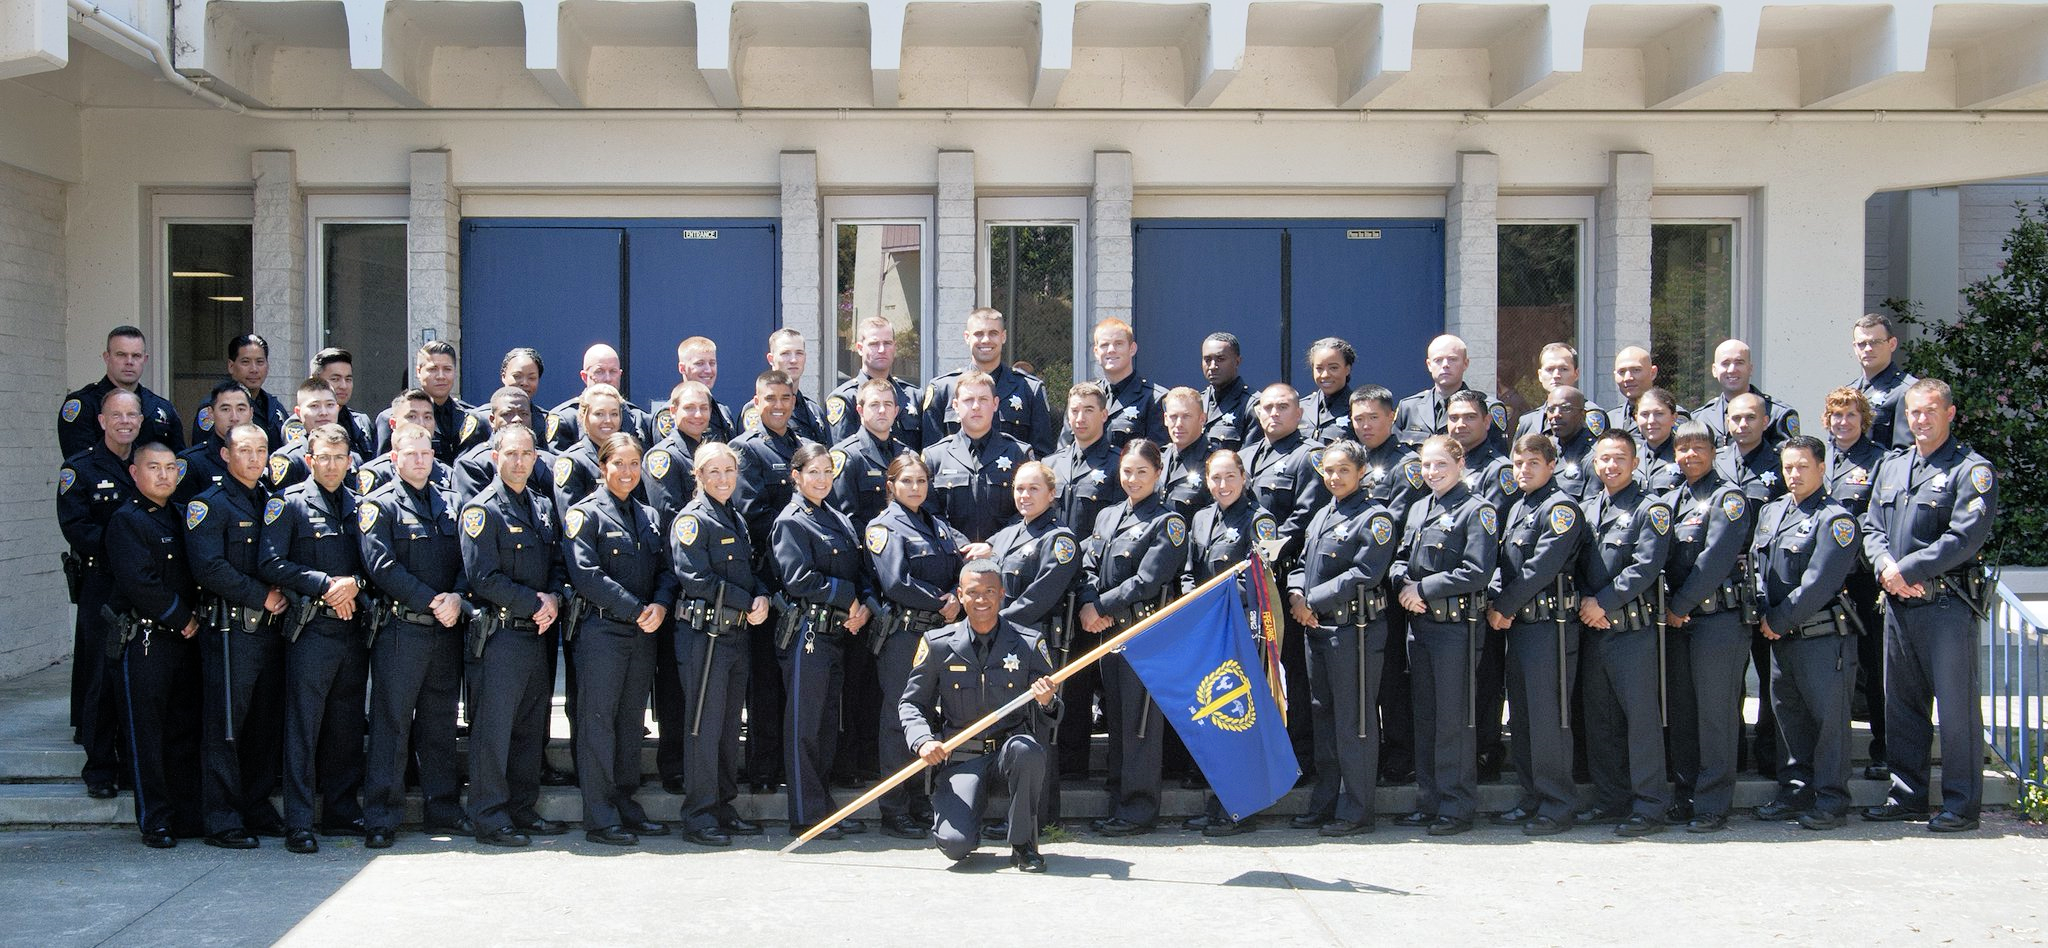 The San Francisco Police Academy has its home on Amber Drive.